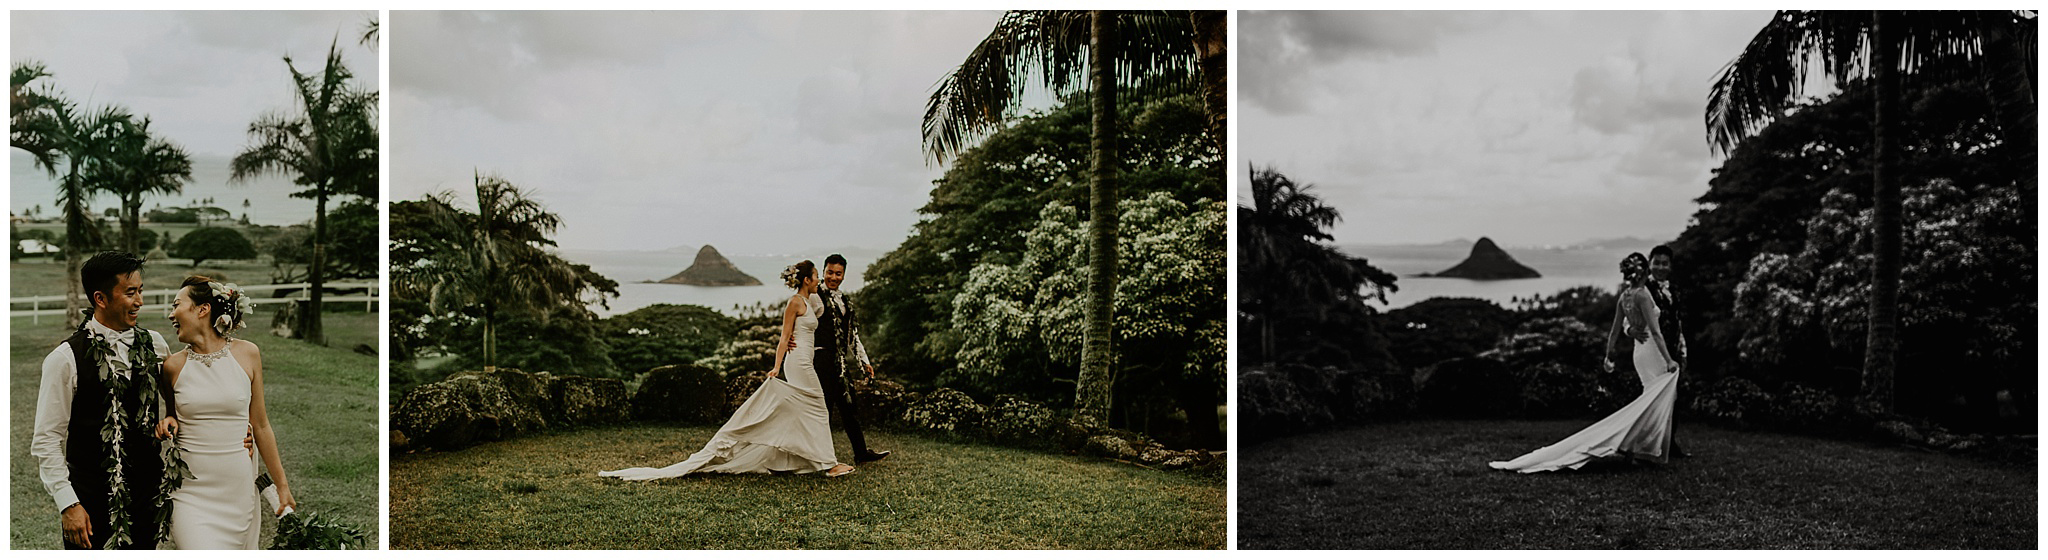 Kualoa-ranch-weddings.jpg